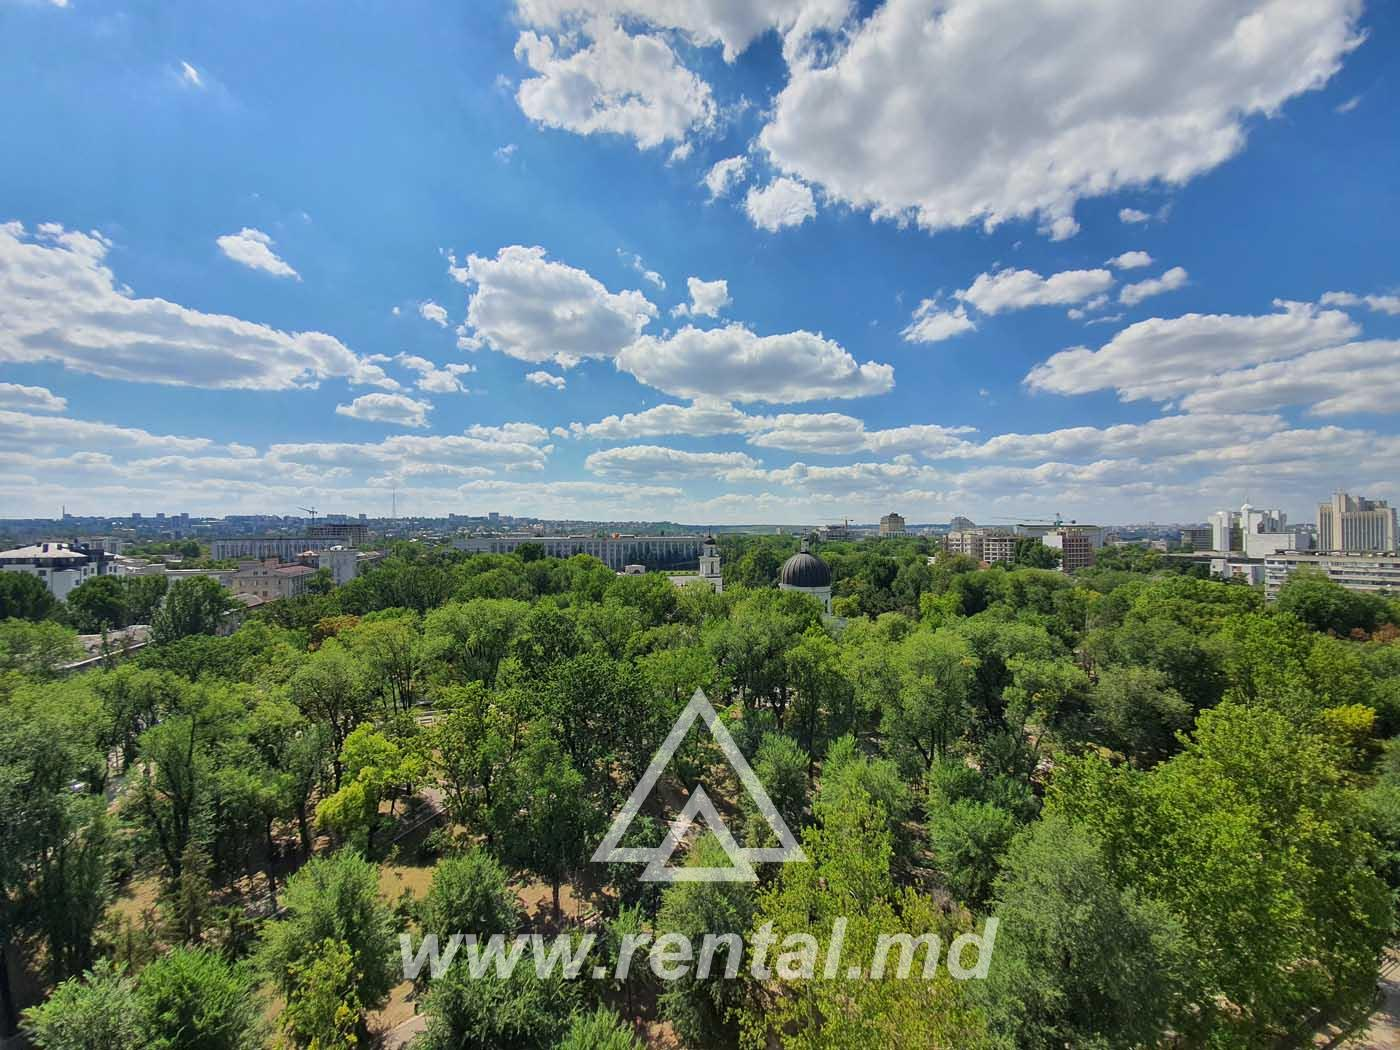 Chirie apartament in Crown Plaza Park